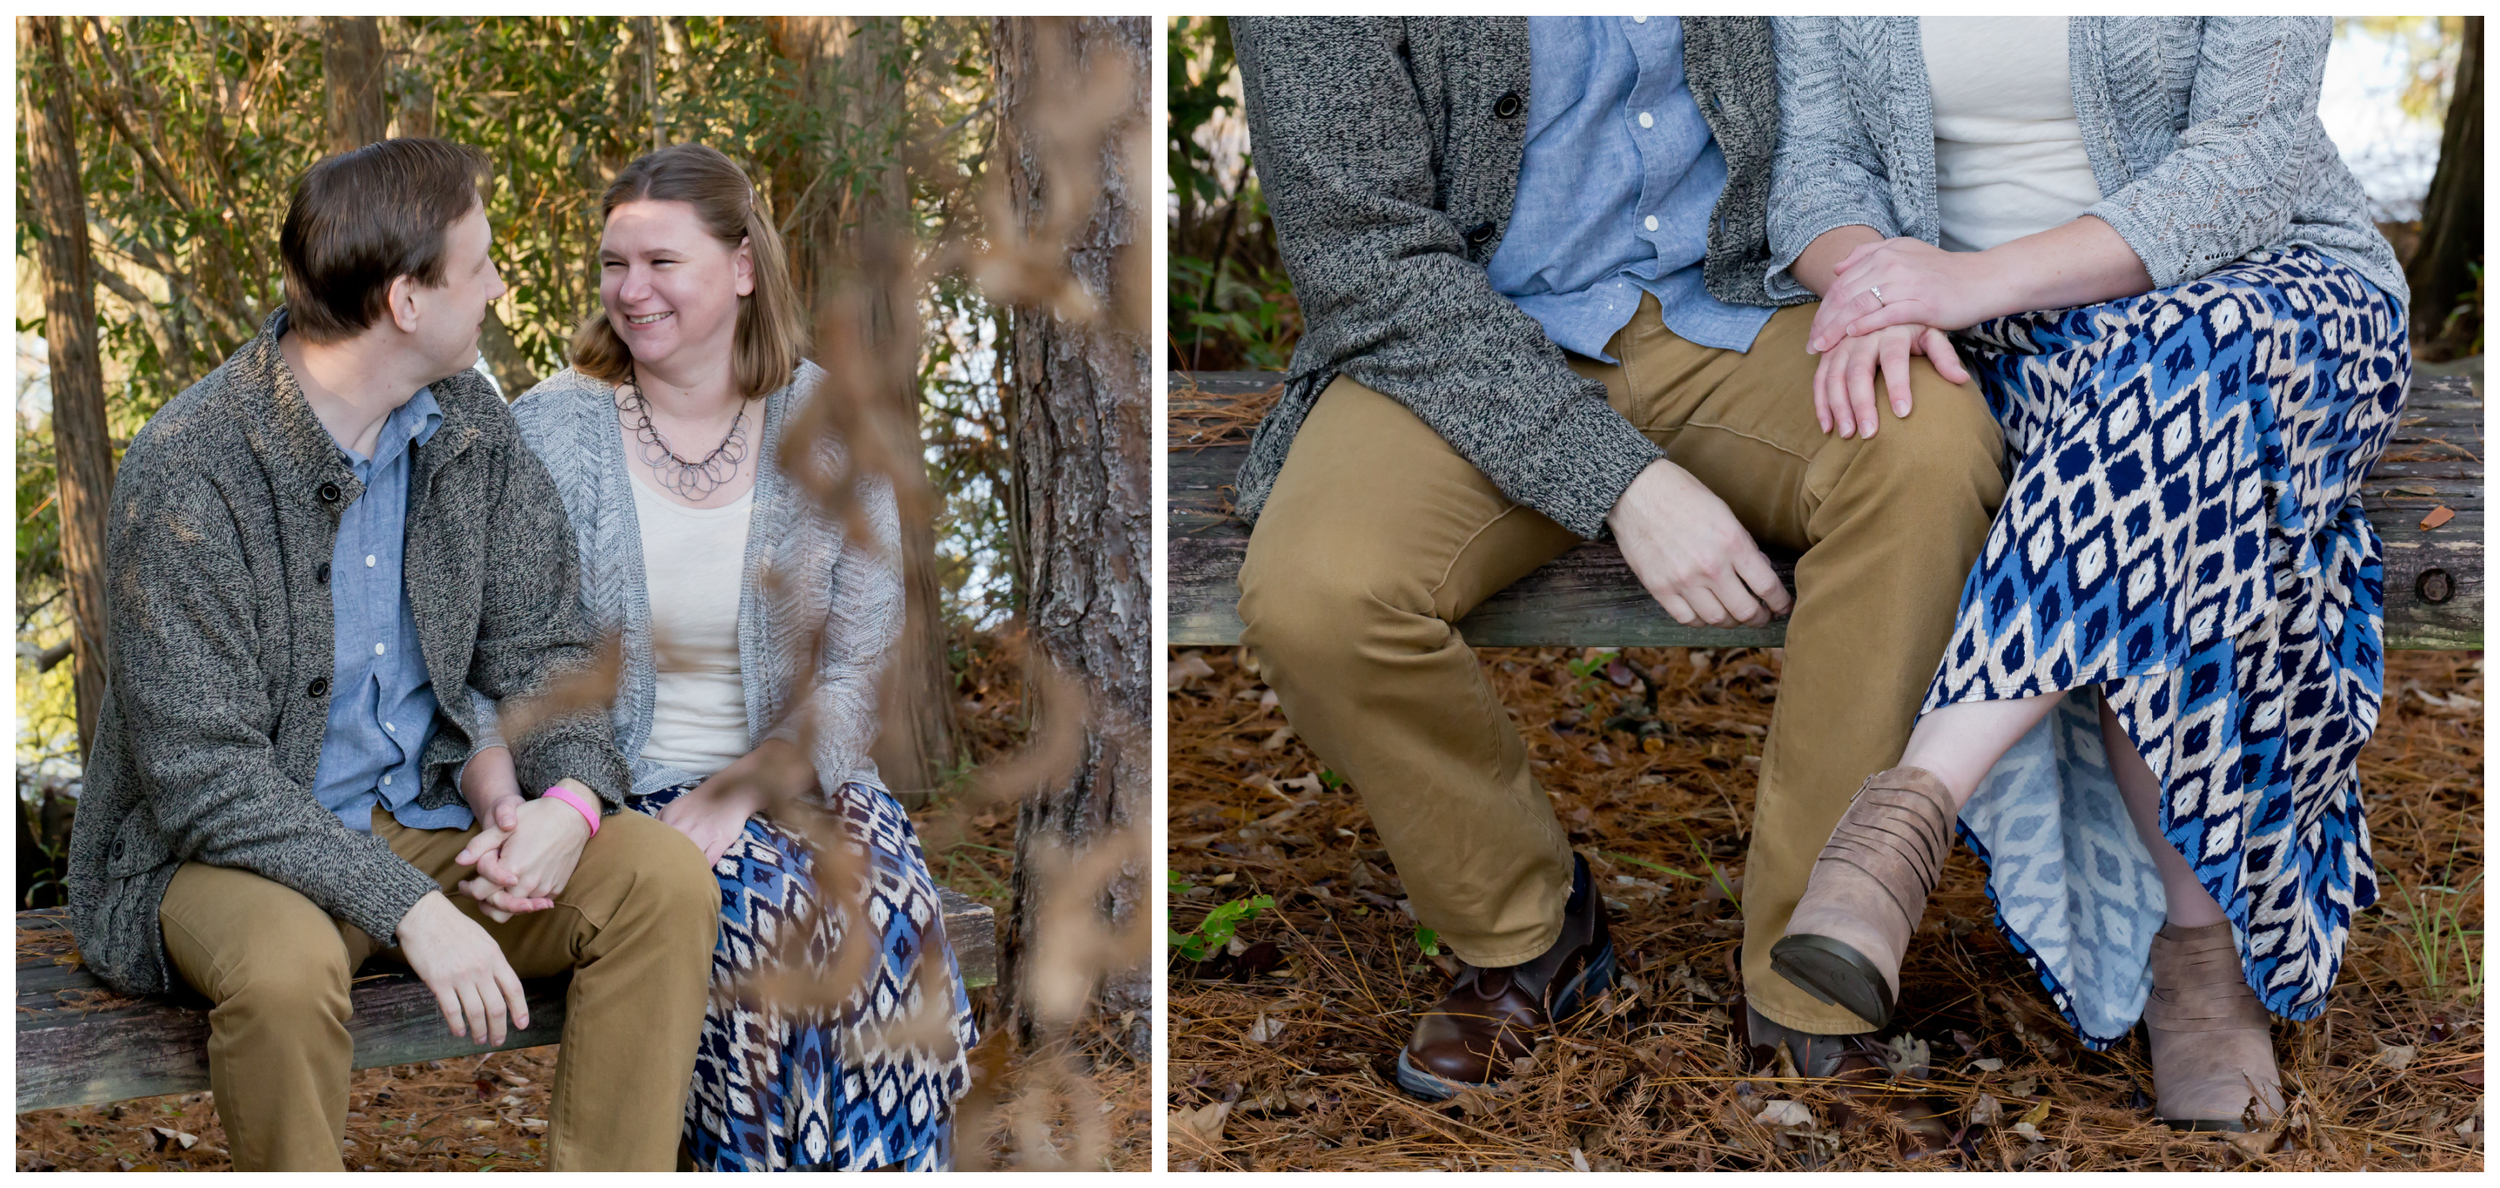 Engagement Photography in nature (Uninvented Colors Photography)